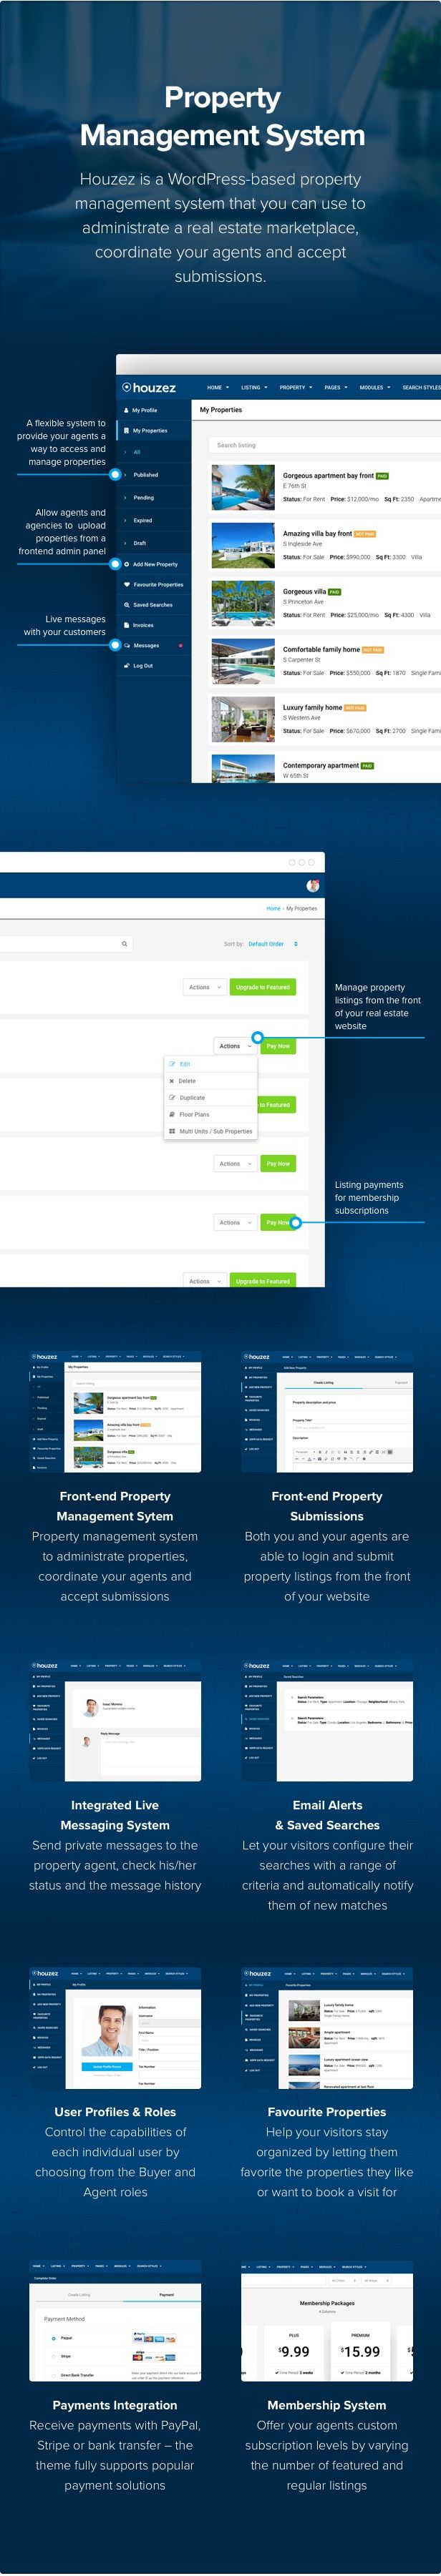 Kensington - Real Estate and Property Management WordPress Theme Free Download - #Download #Estate #Free #Kensington #Management #Property #Real #Theme #WordPress